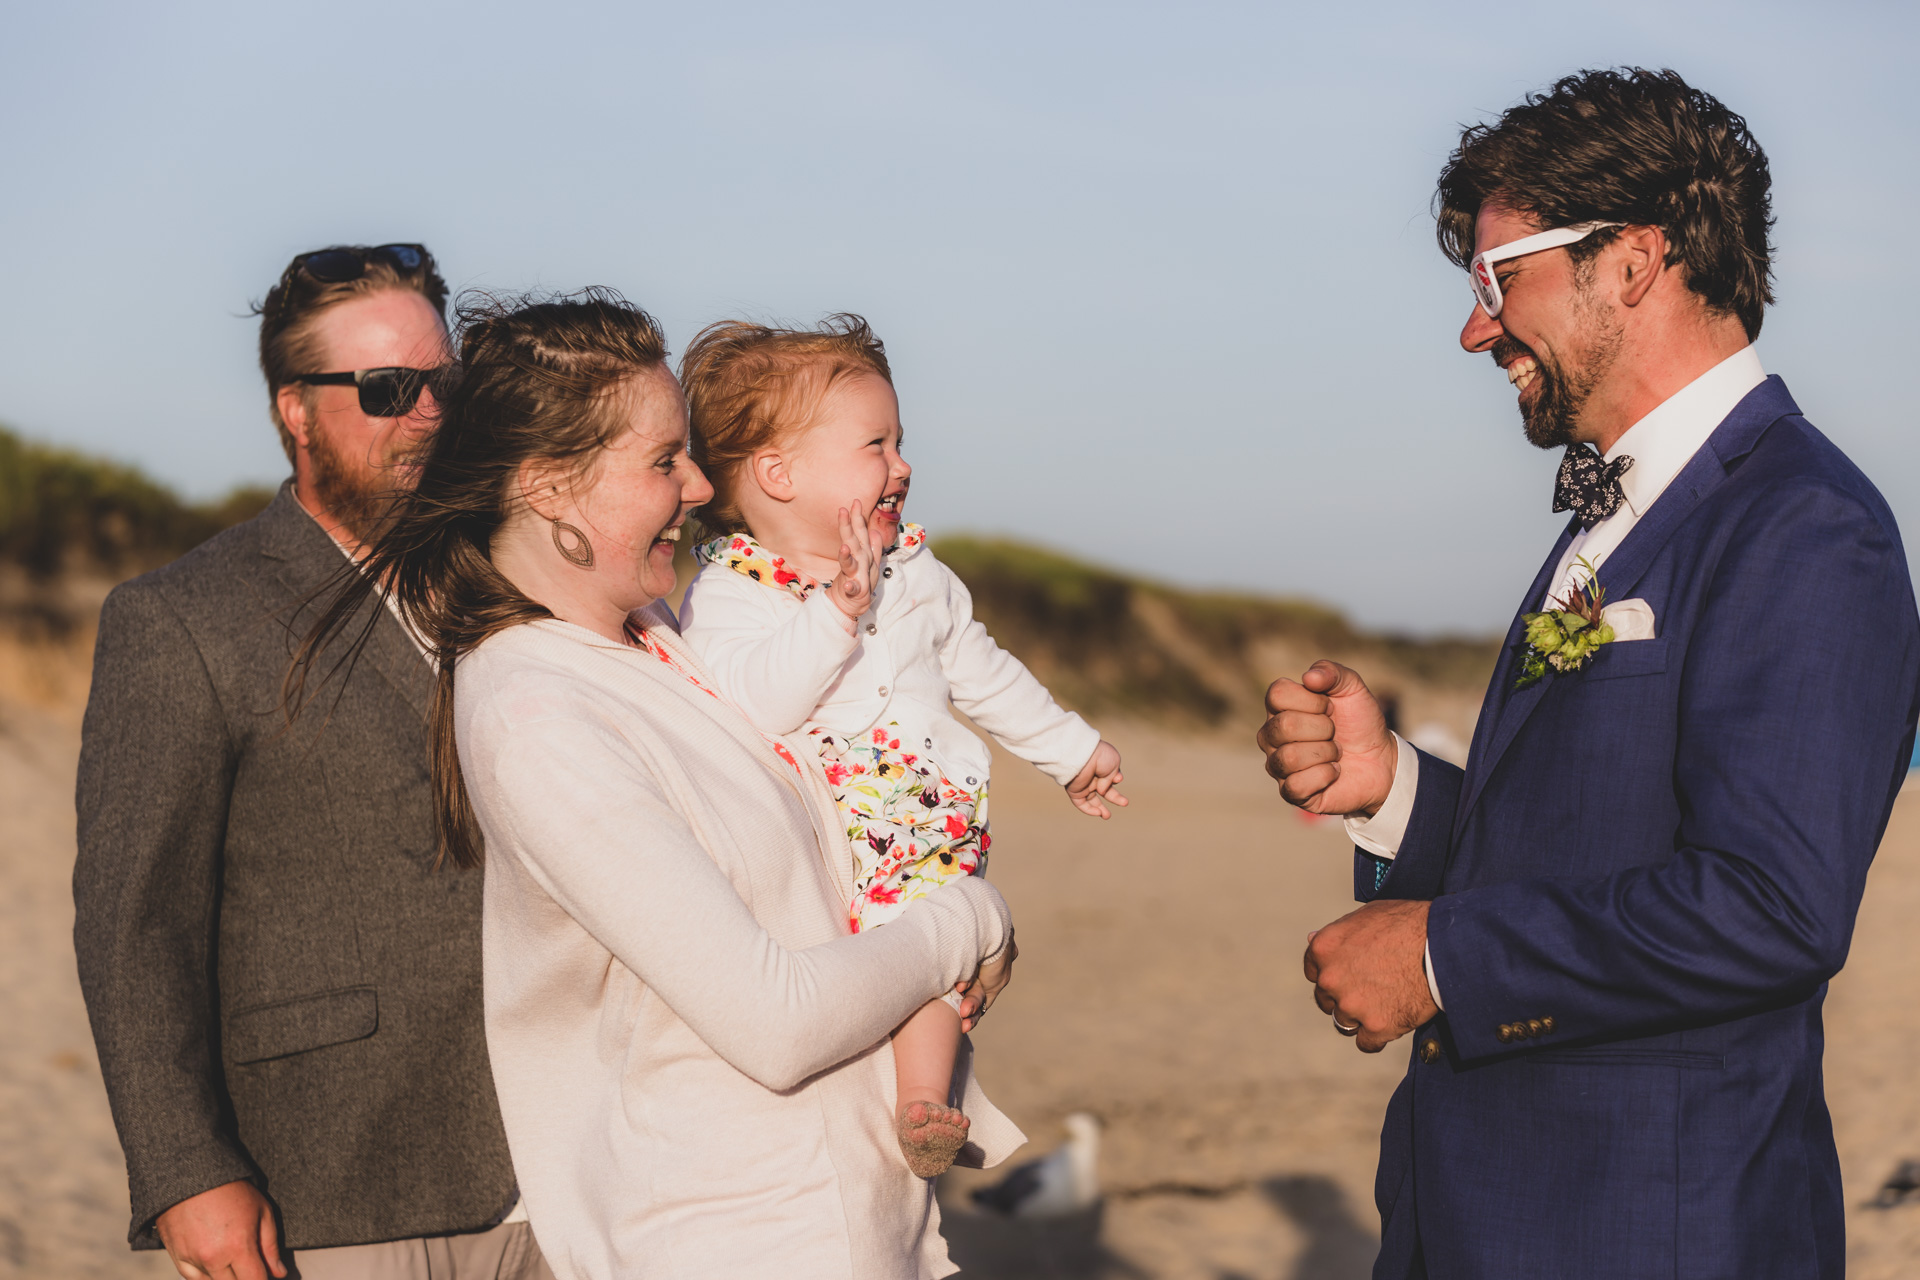 New England Beach Elopement and Elopement Photography | The groom and a few of the guests